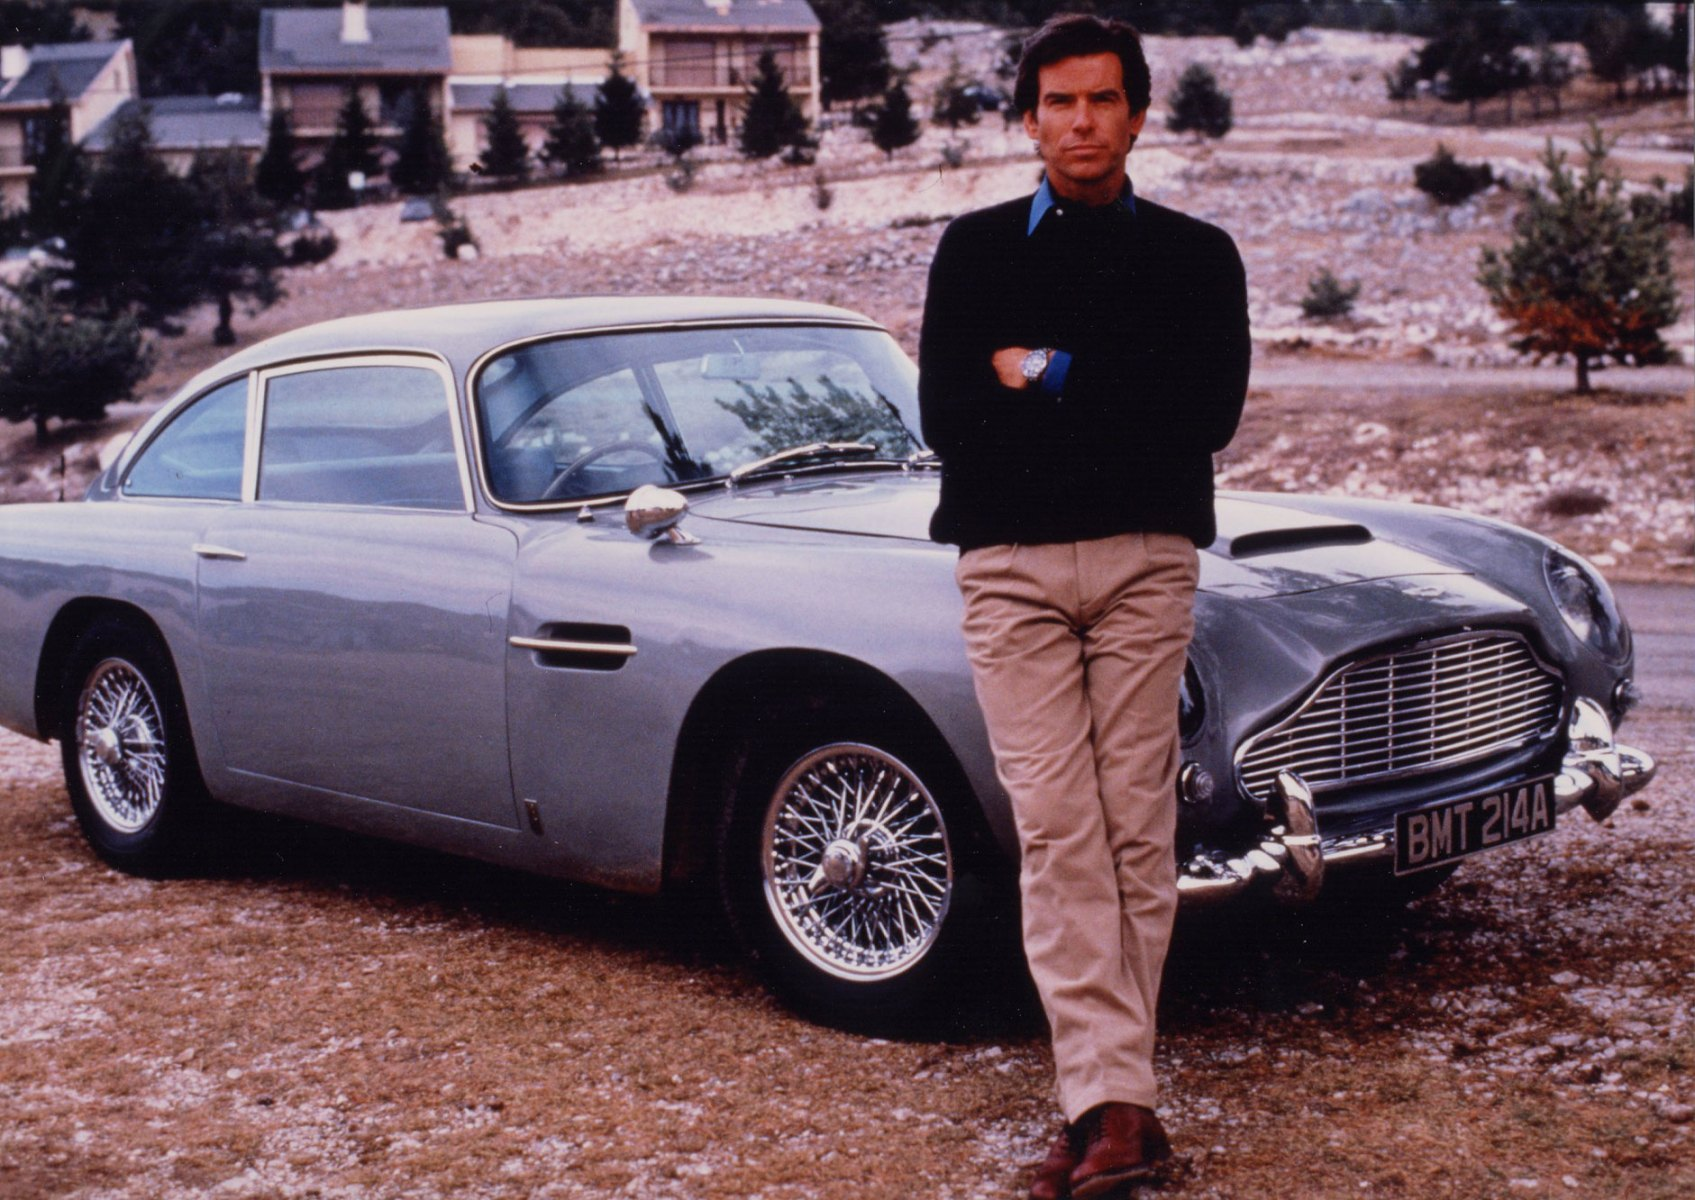 """Pierce Brosnan's """"GoldenEye"""" Aston Martin Would Be a Jolly Good Father's Day Gift"""